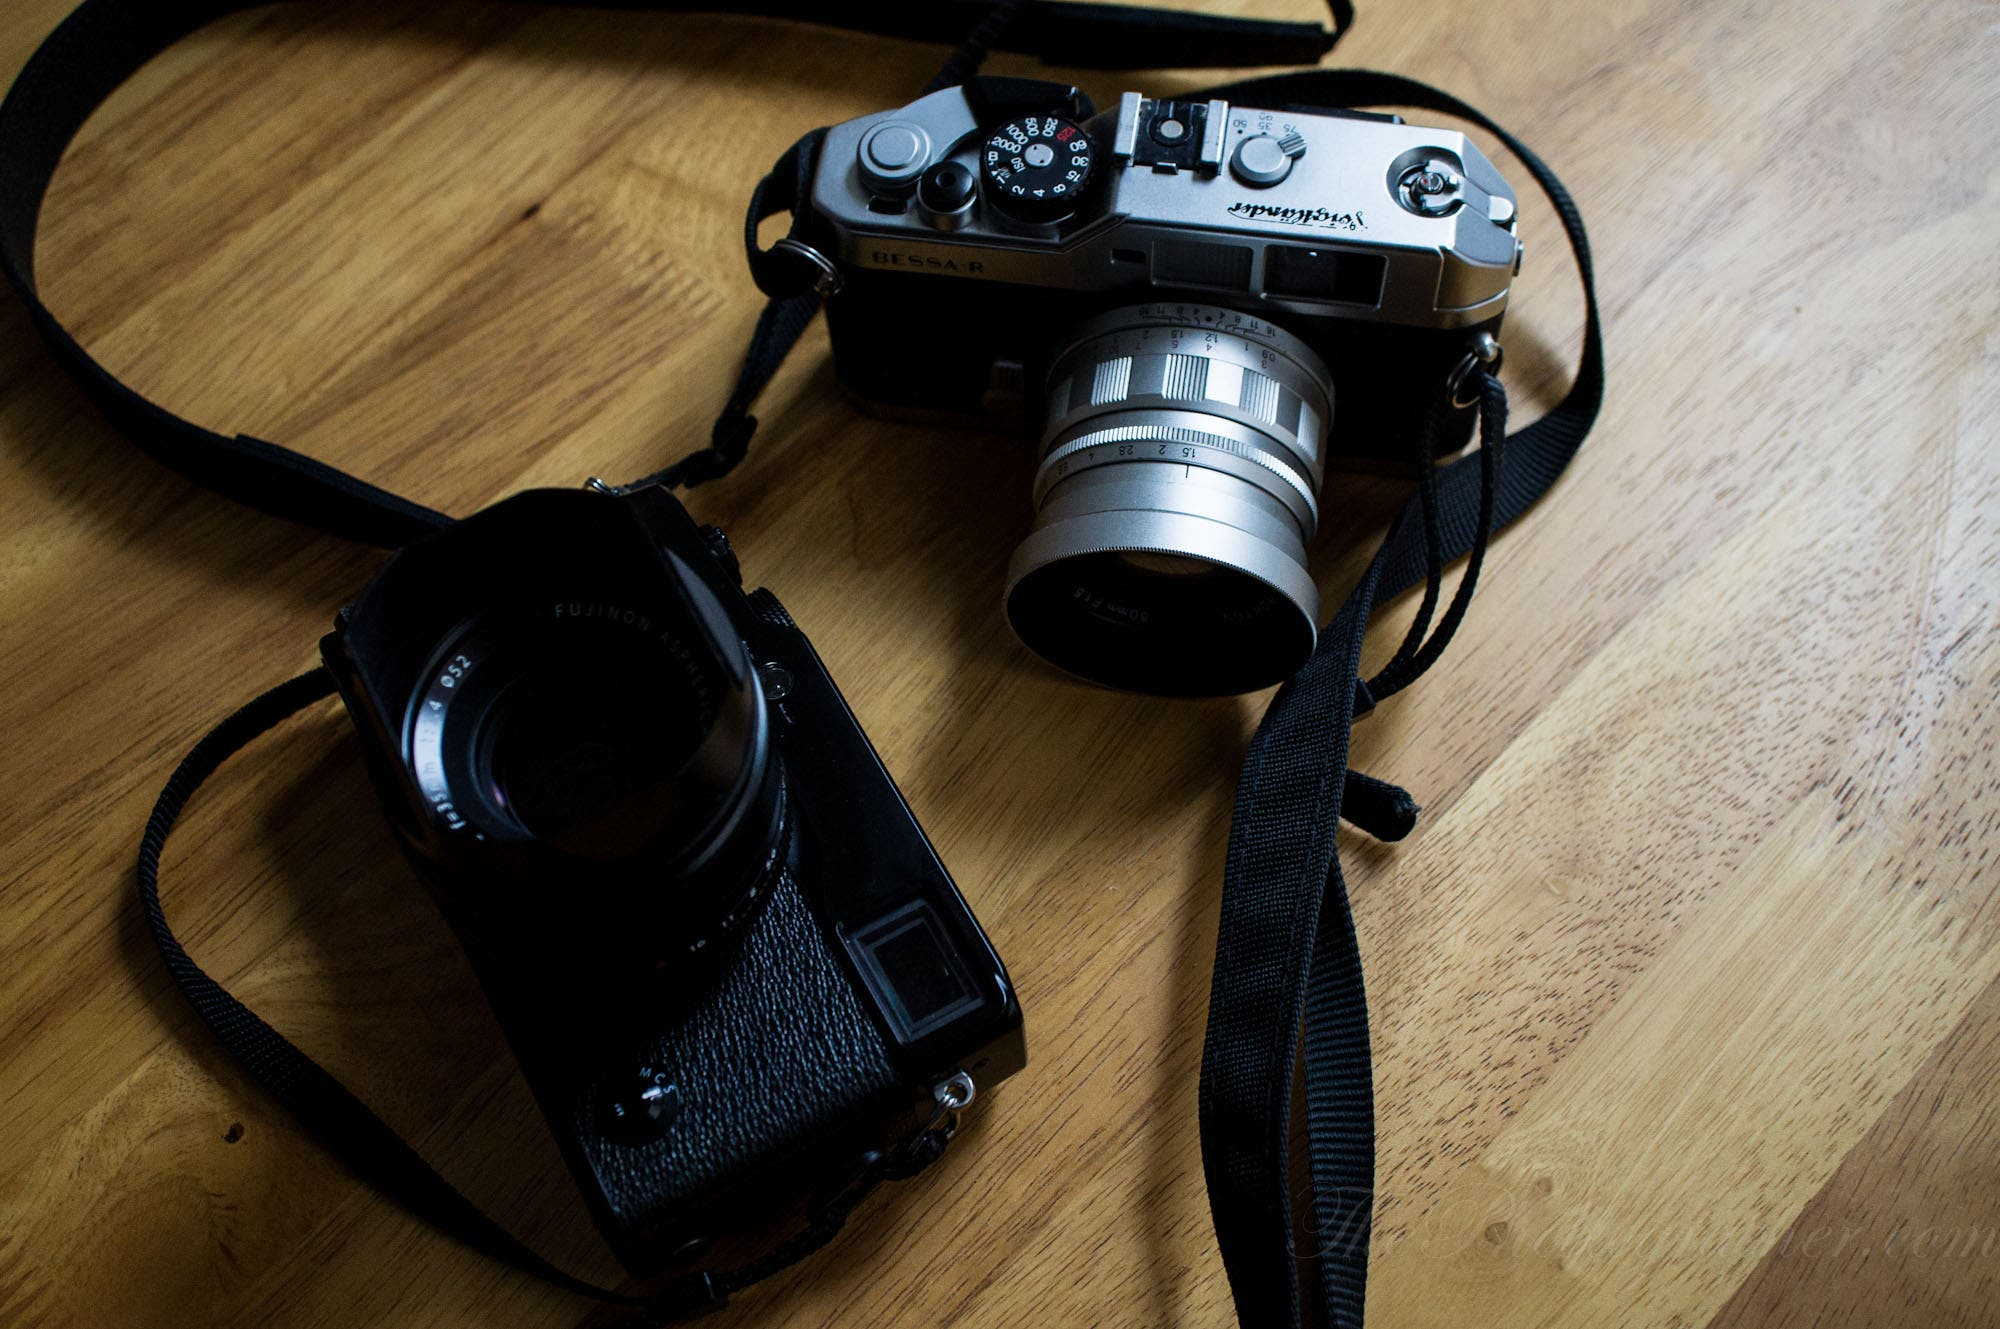 Cheap Photo: The Return of the Fujifilm X Pro 1 Lens + Body Deal